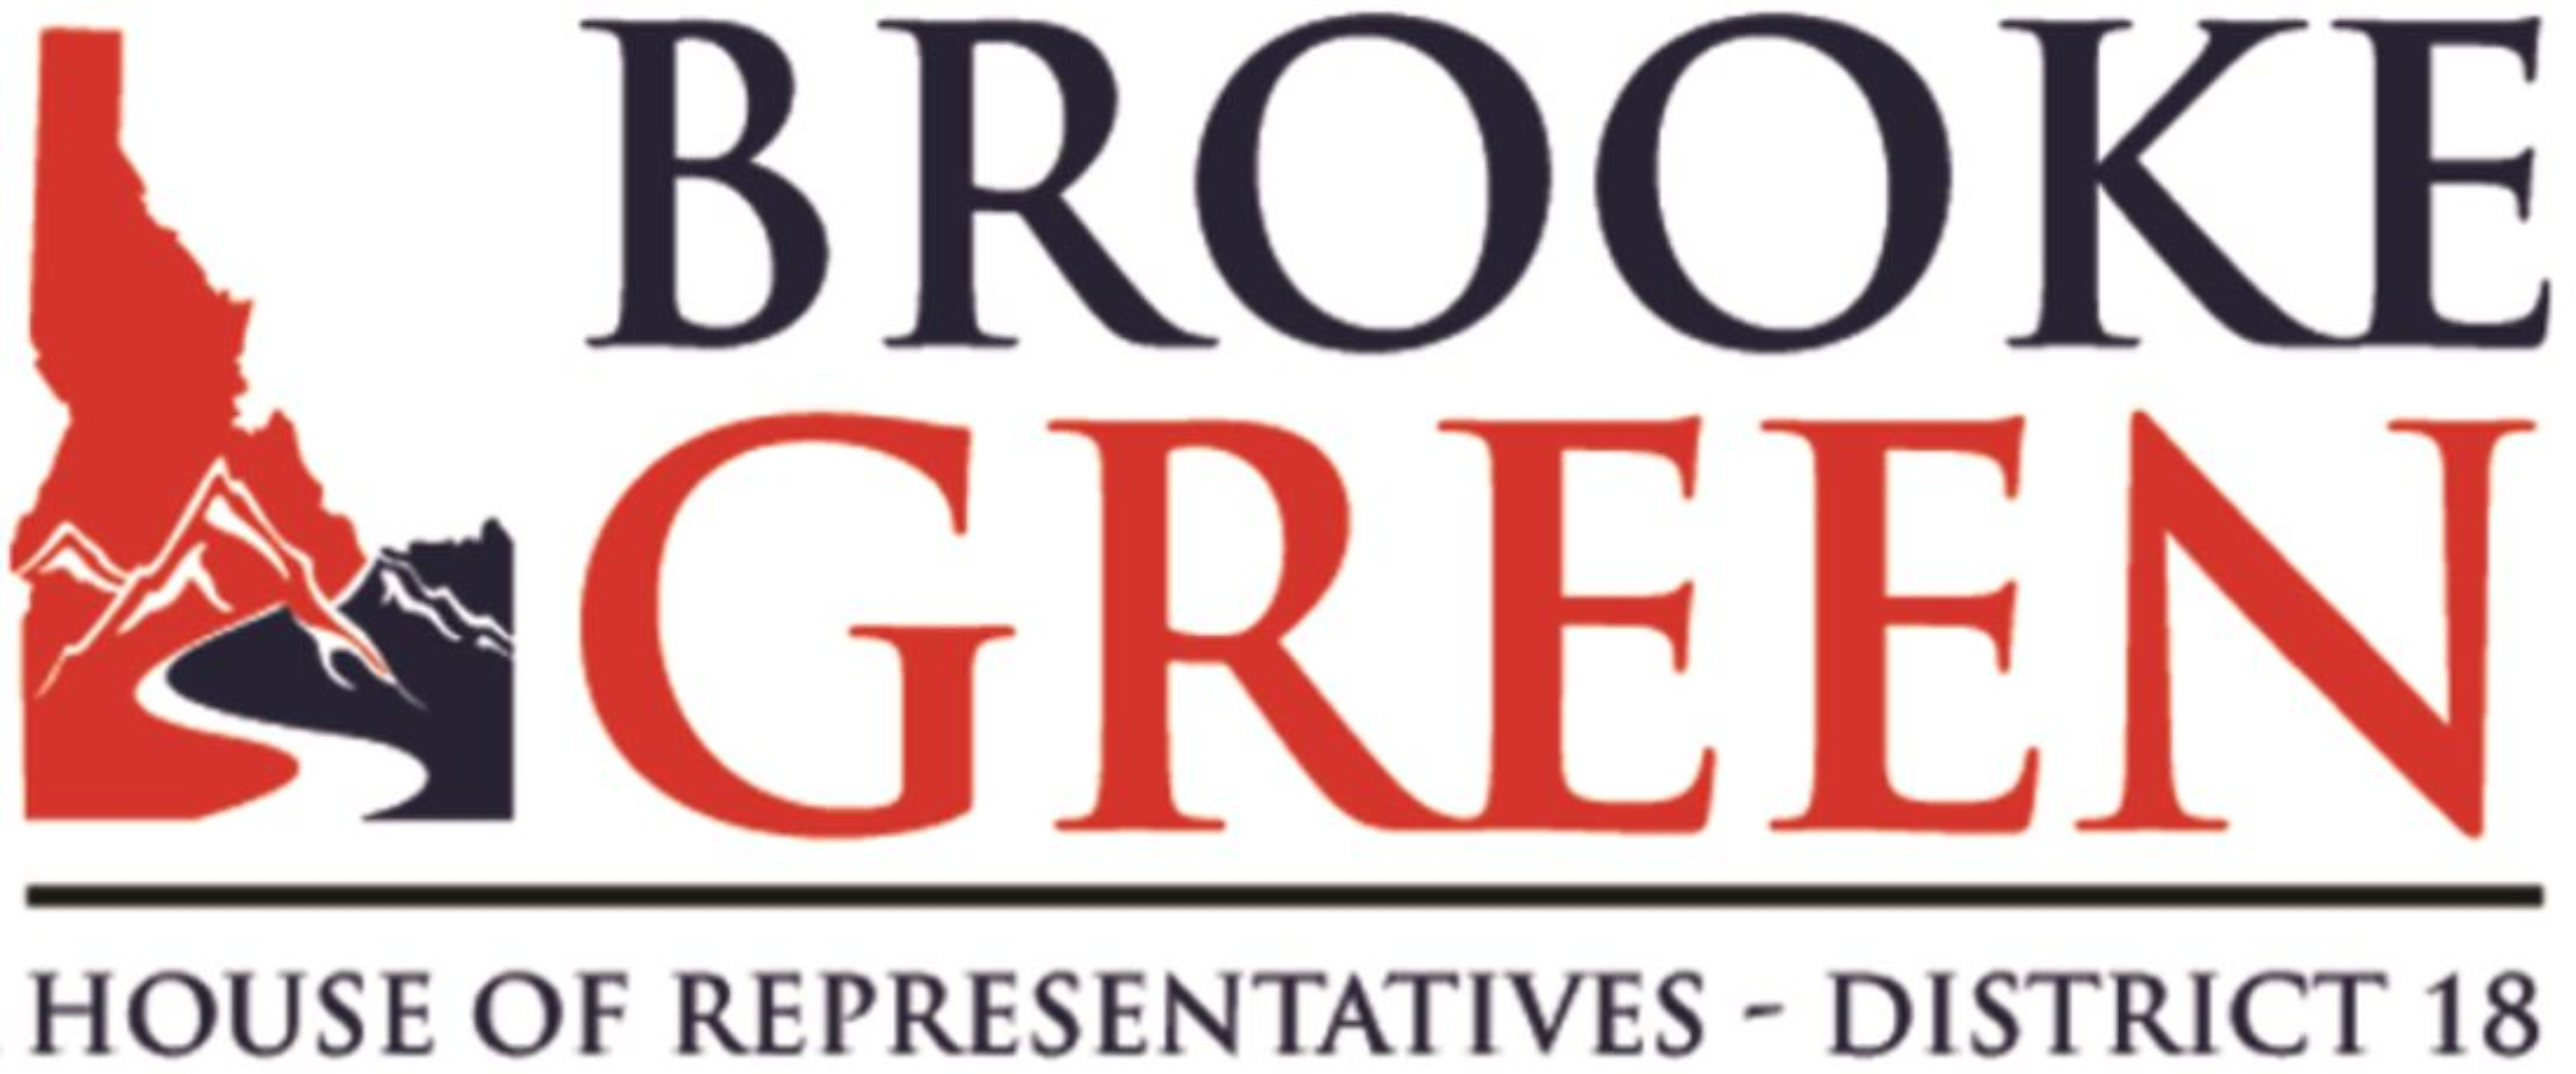 Brooke Green for Idaho District 18